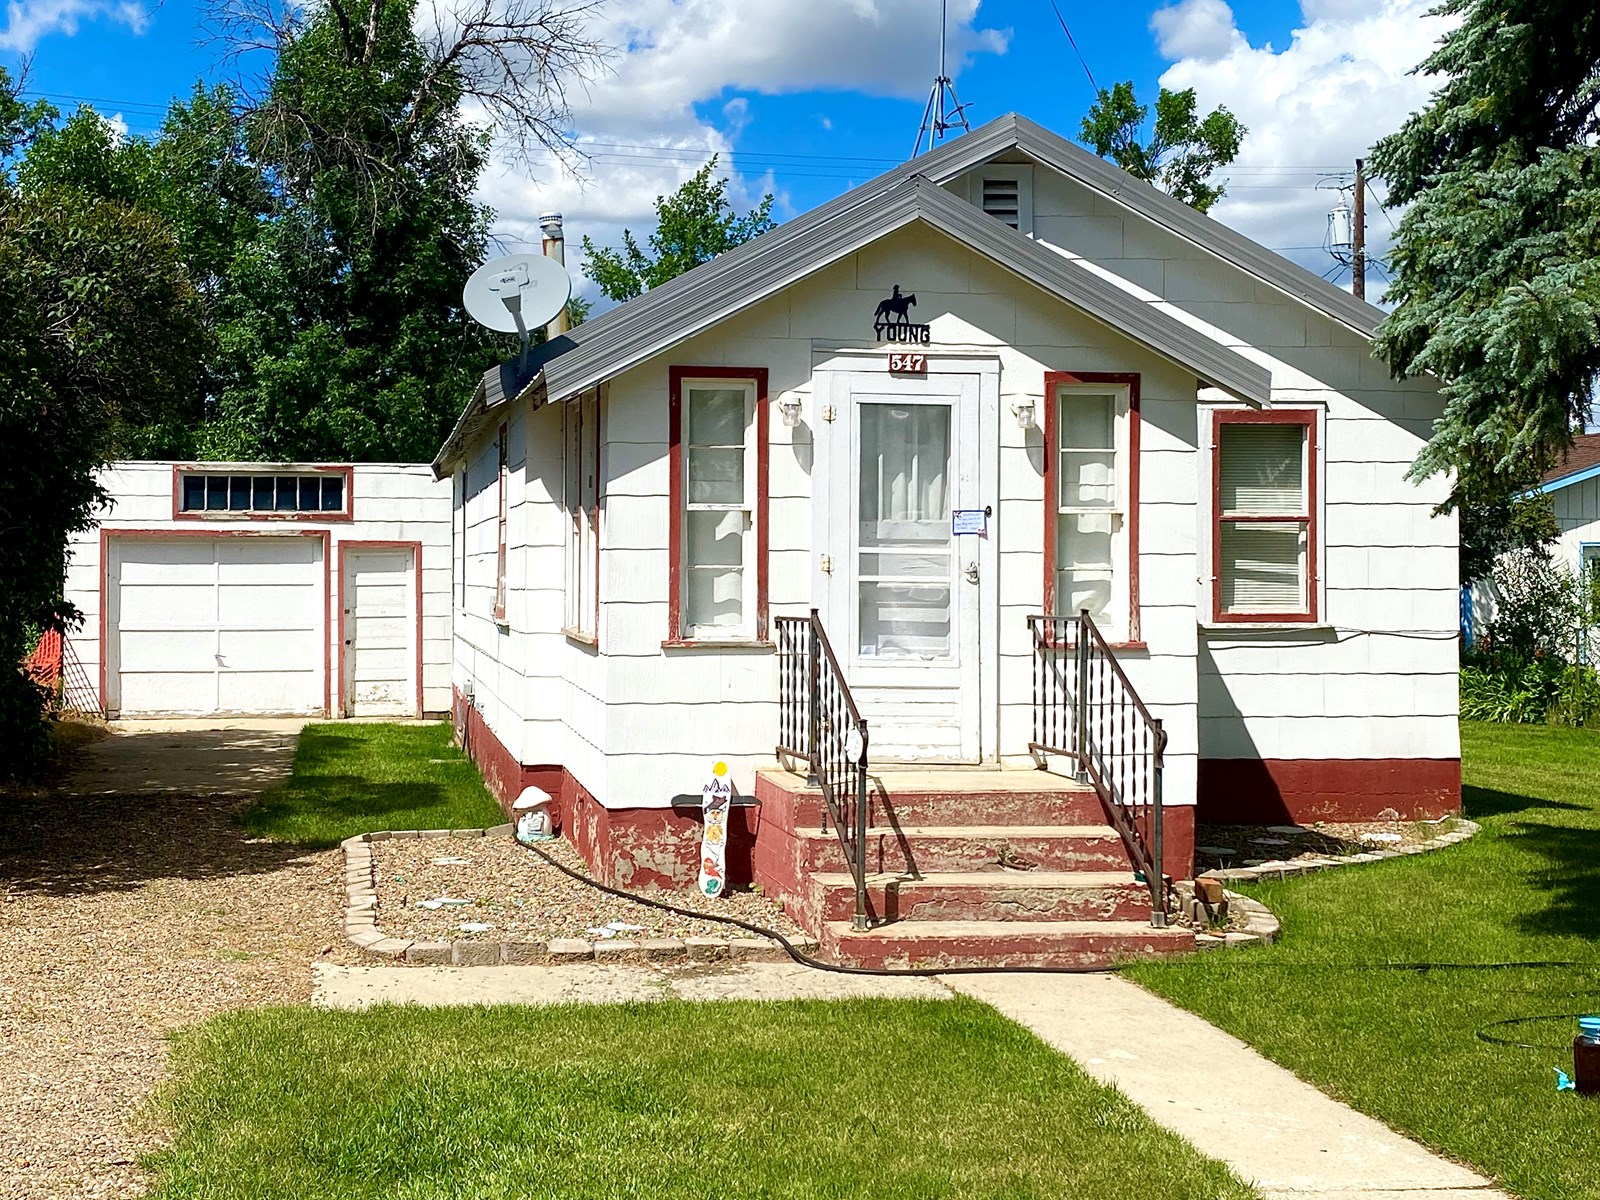 Investment Property, Home in Town, Long-Term Renter in Place